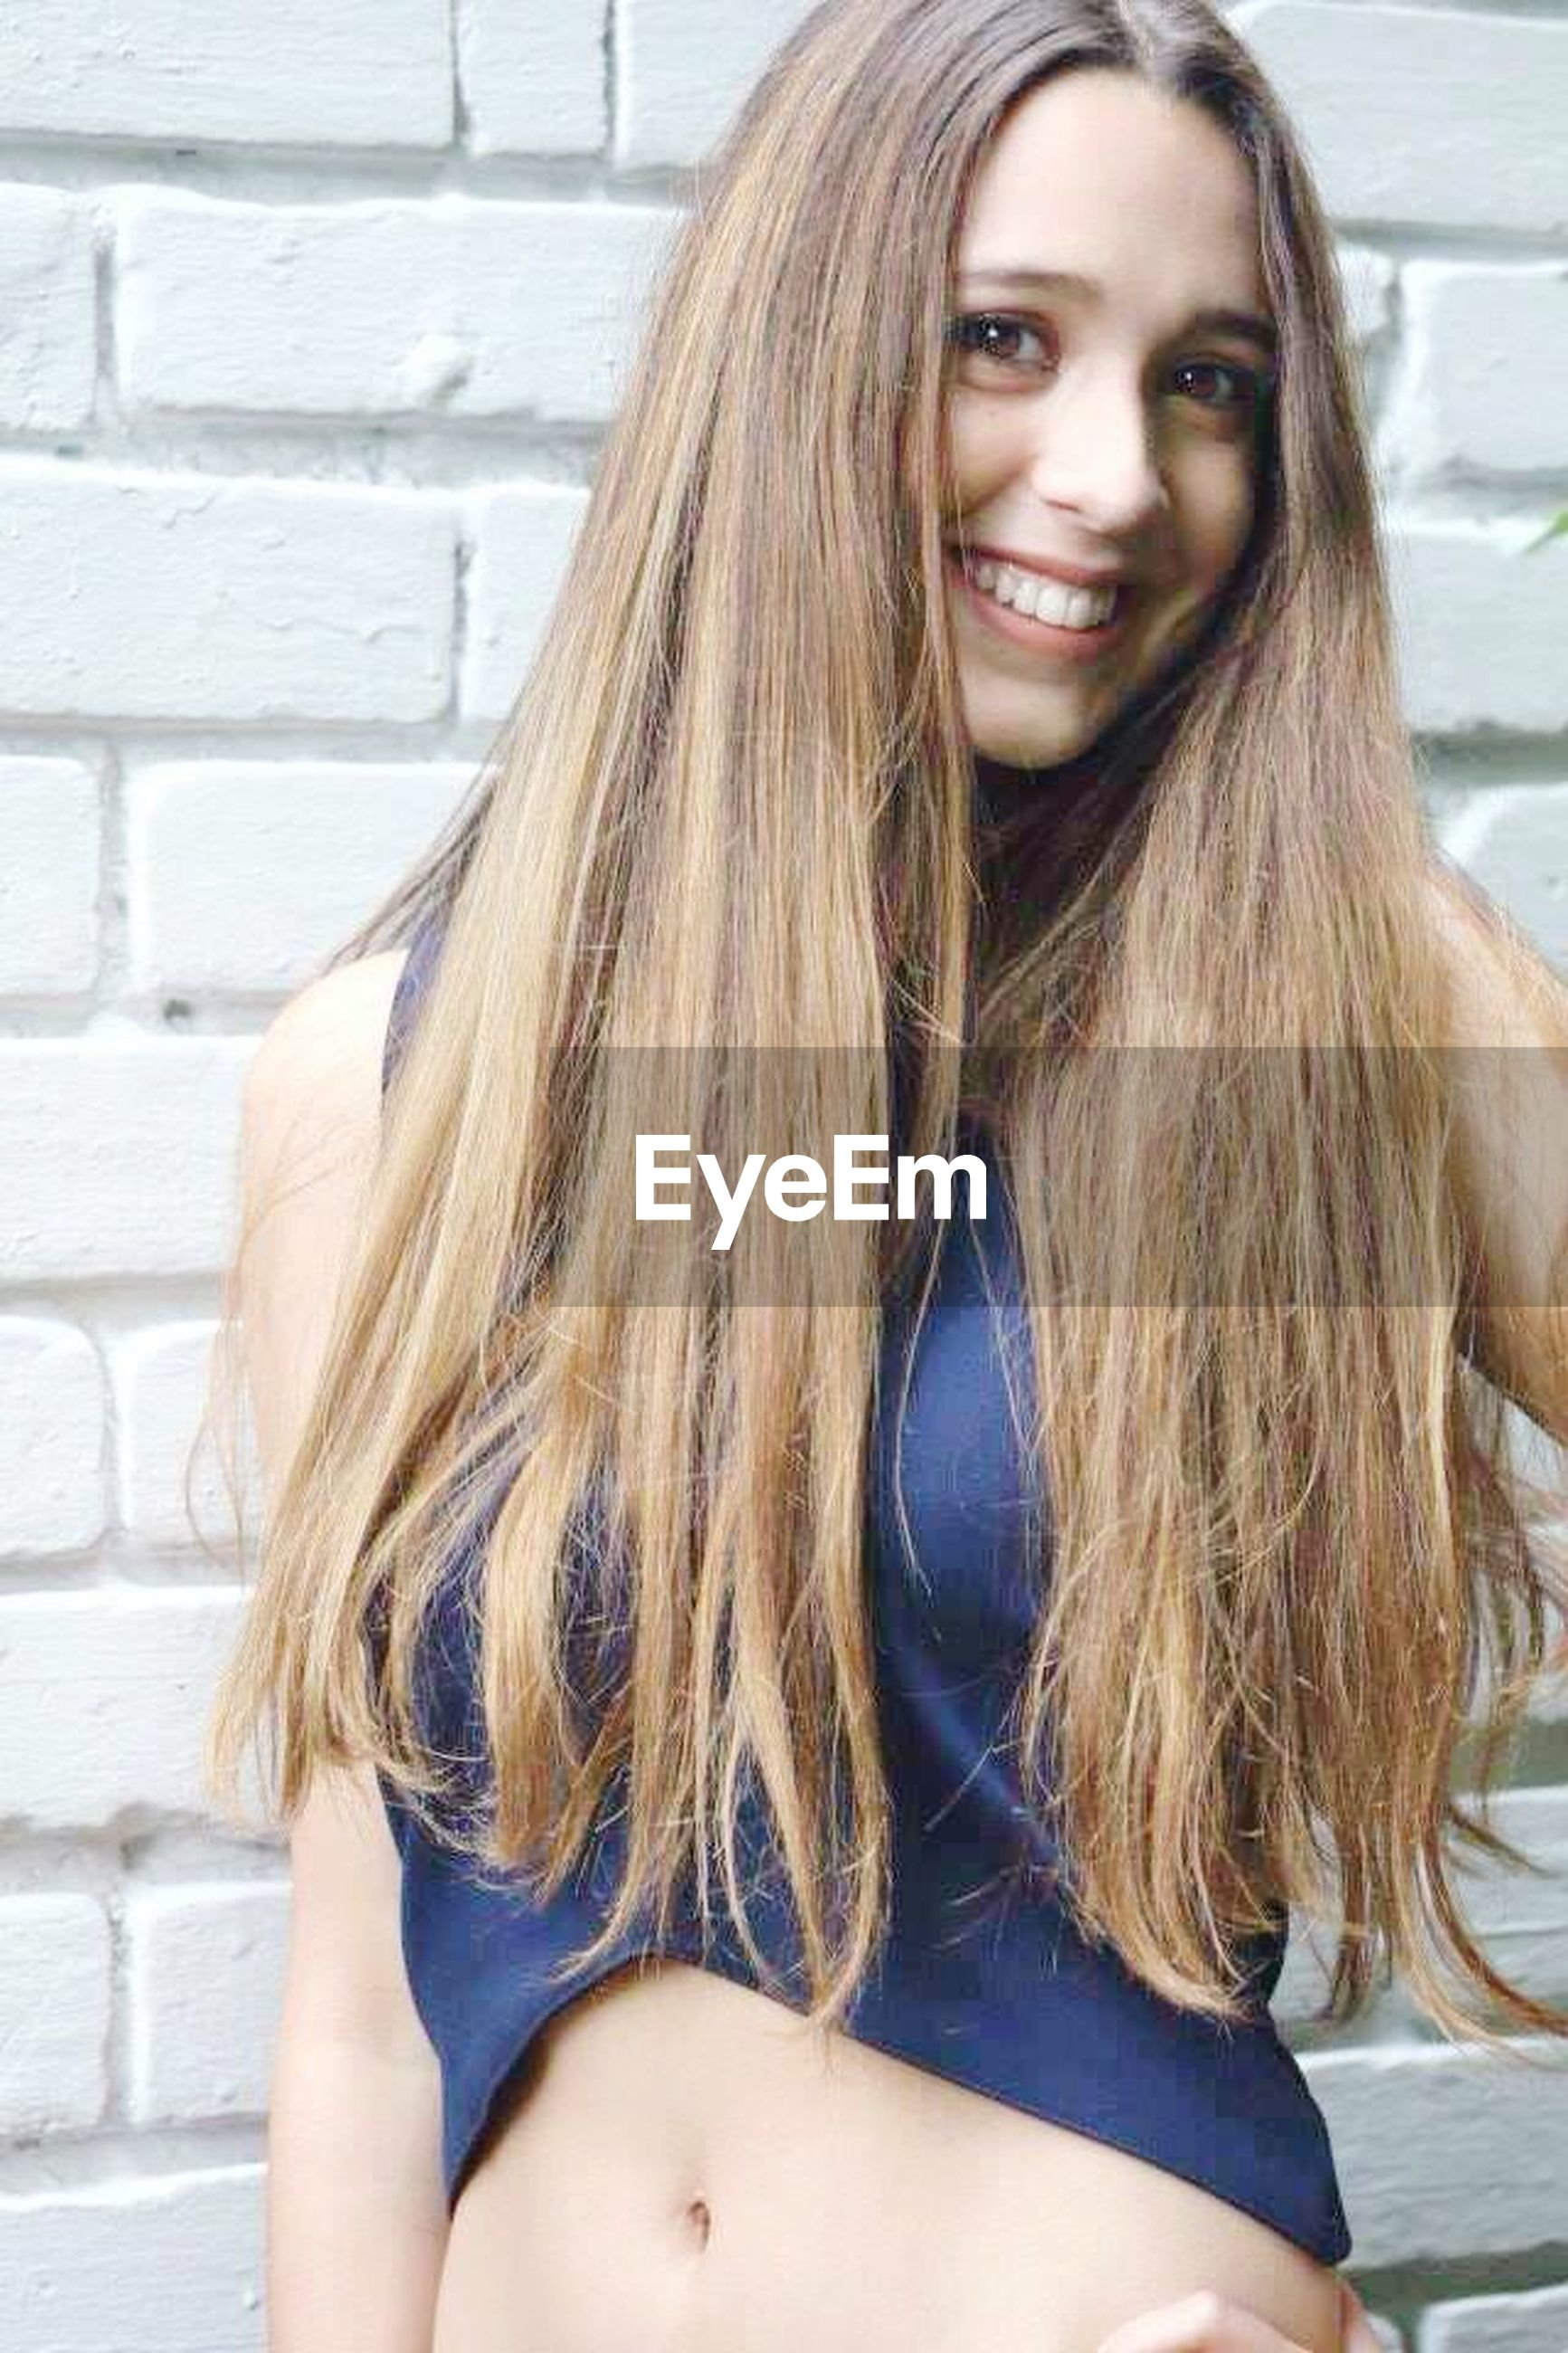 long hair, young women, young adult, person, lifestyles, portrait, looking at camera, leisure activity, front view, brown hair, medium-length hair, beauty, blond hair, smiling, black hair, headshot, focus on foreground